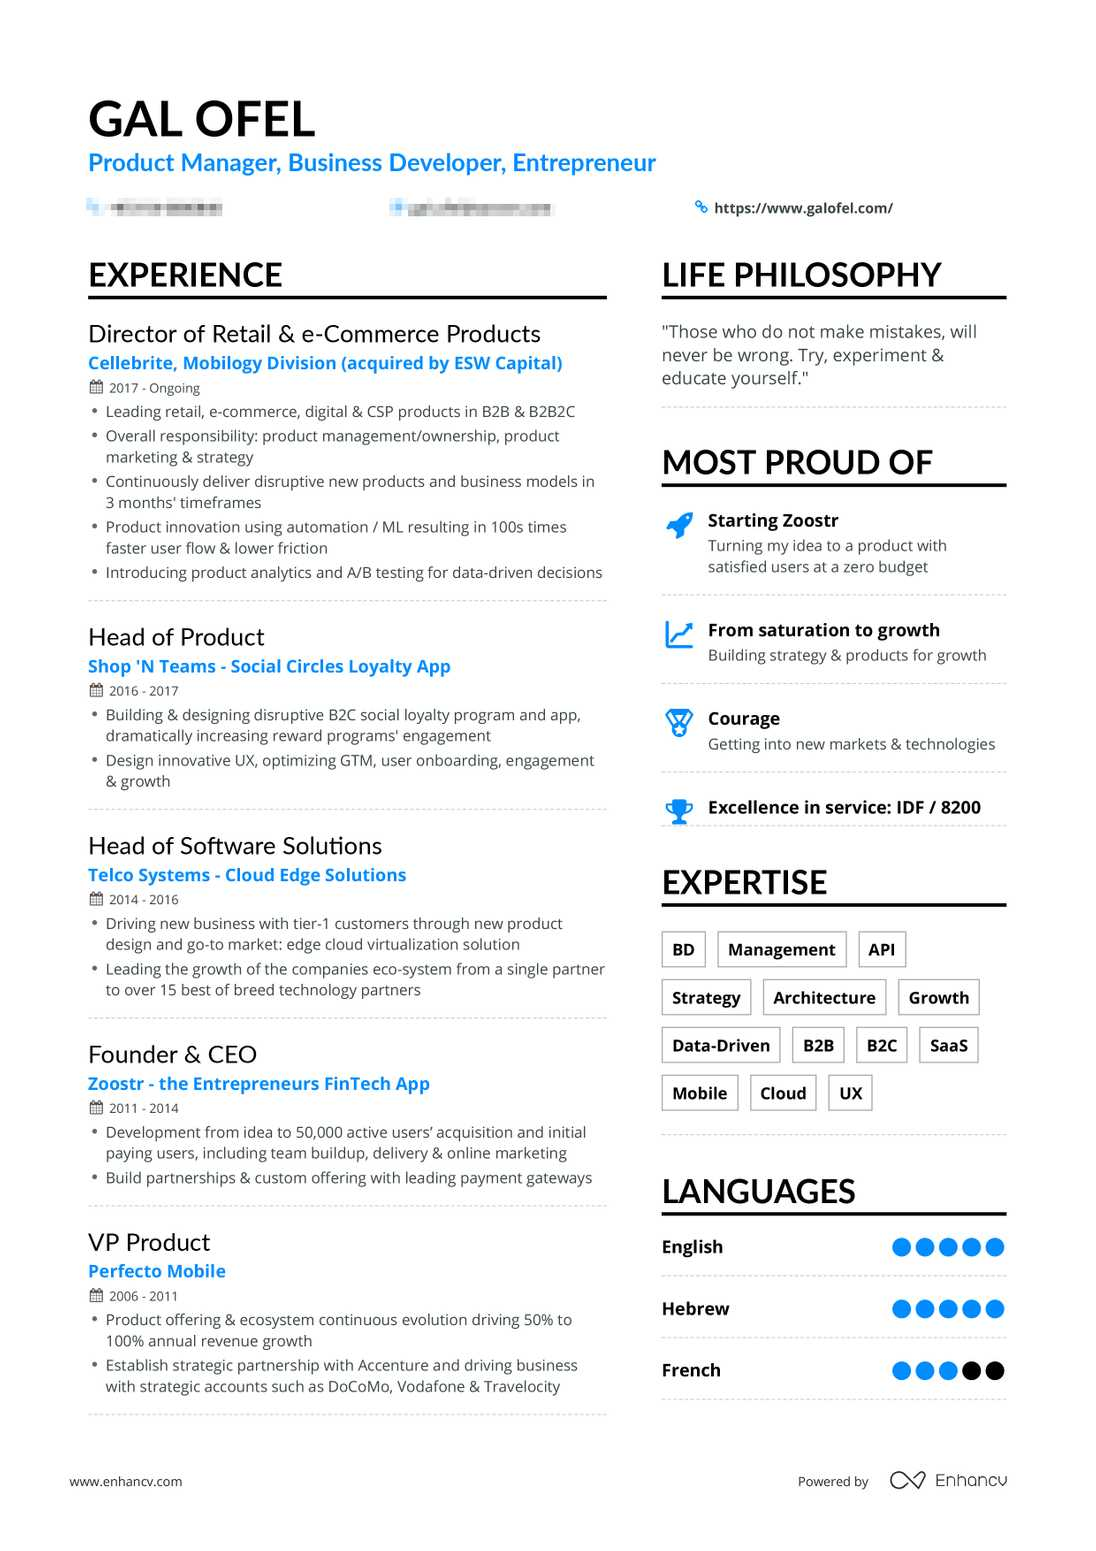 much to have someone write your resume writing services you make gal ofel ceh Resume Have Someone Make Your Resume